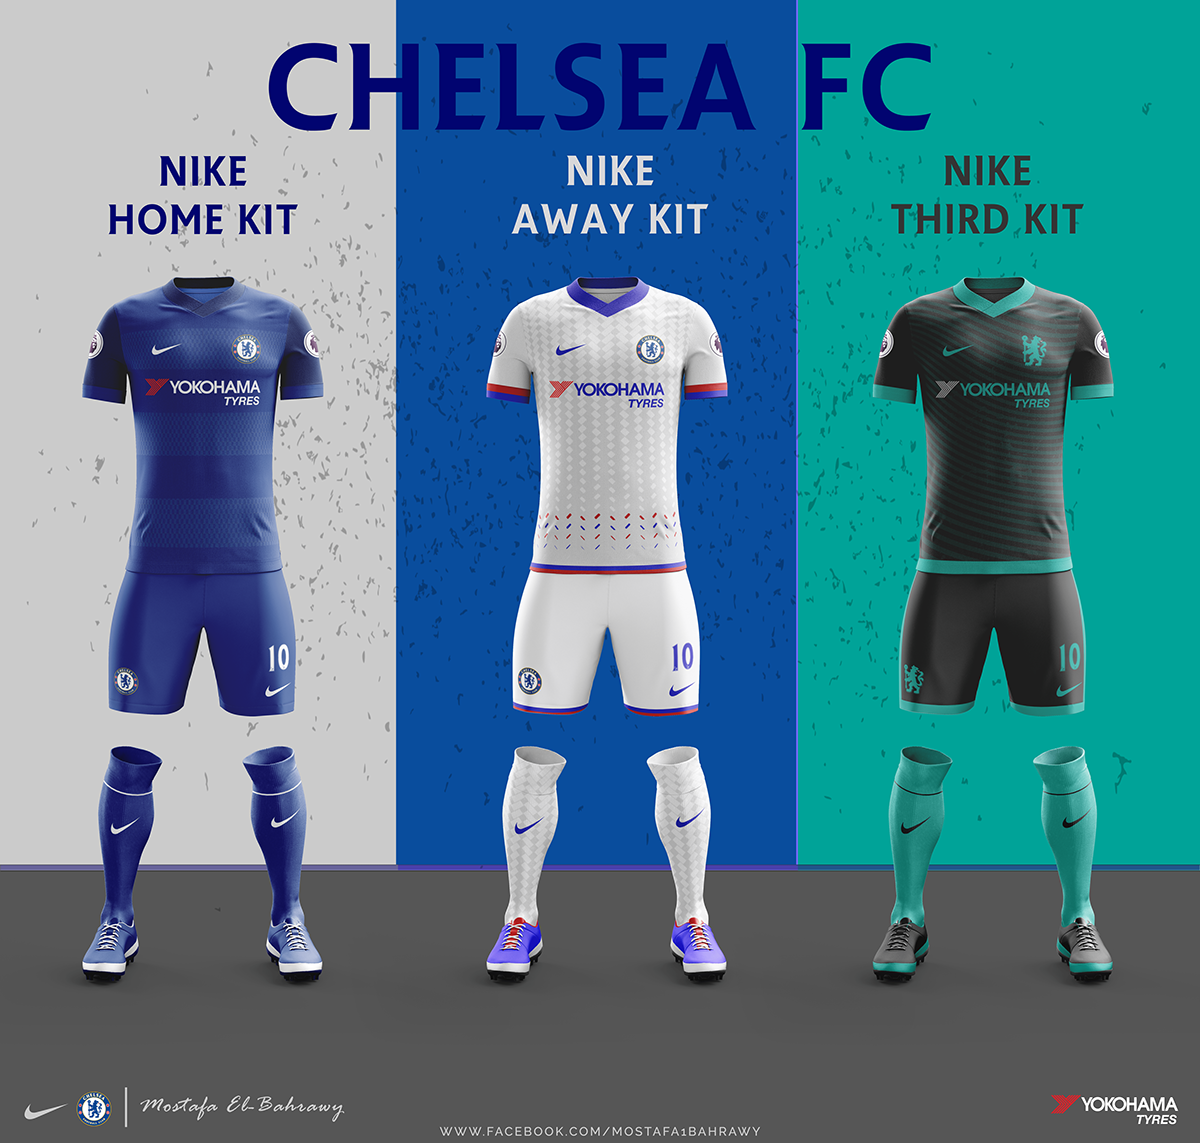 brand new d2e6a 191f6 Chelsea Nike Kits (2017-2018) on Behance